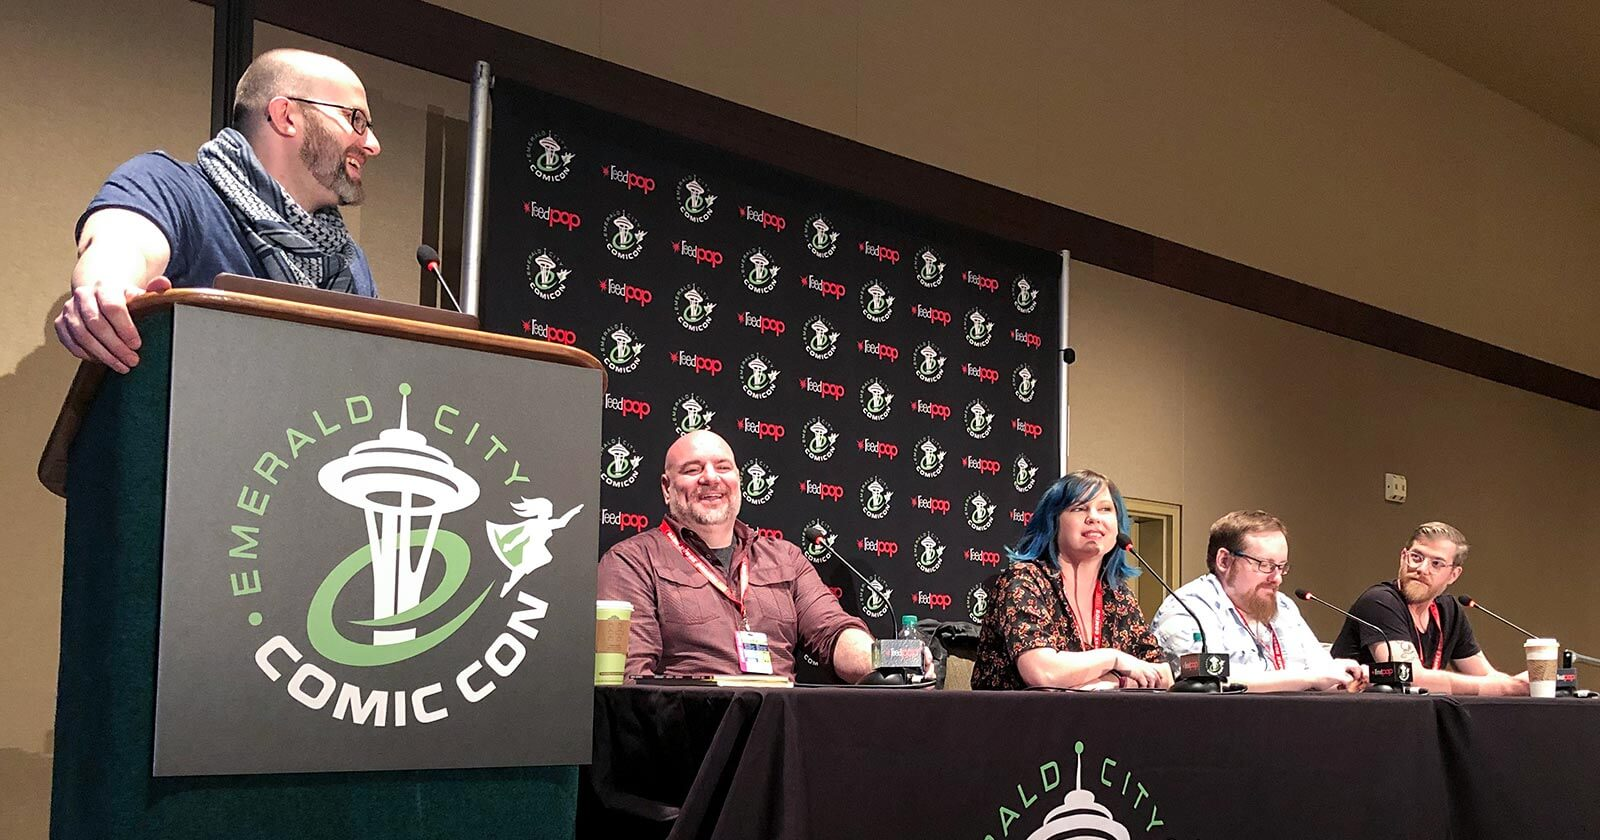 Story Unlimited panel, photographed by Wendy Buske at Emerald City Comic Con 2019